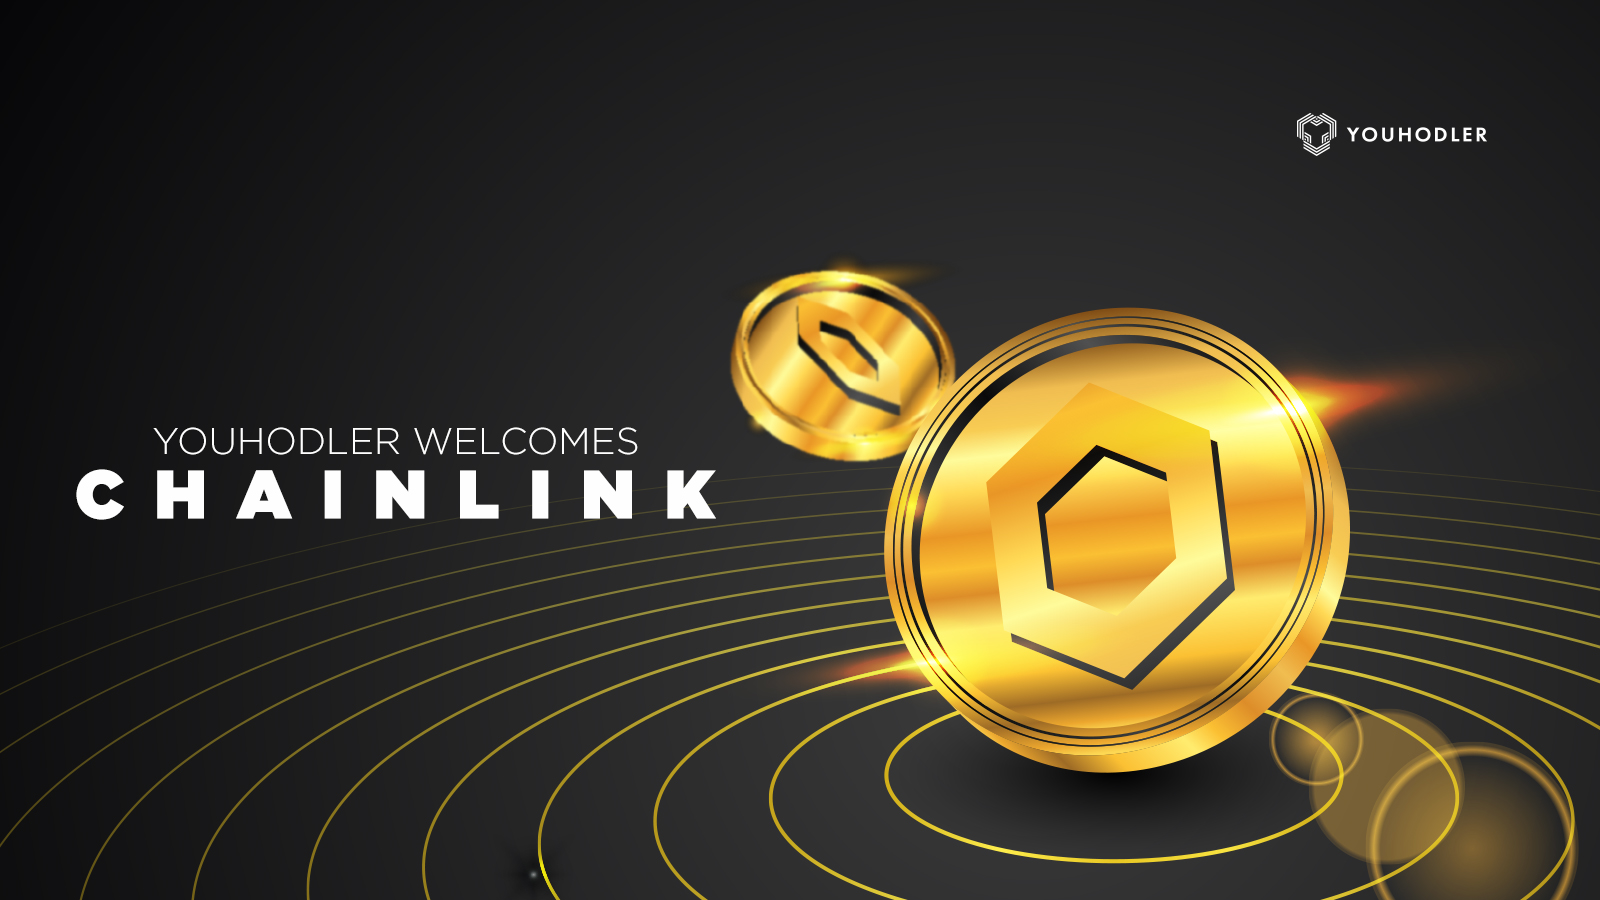 chainlink youhodler